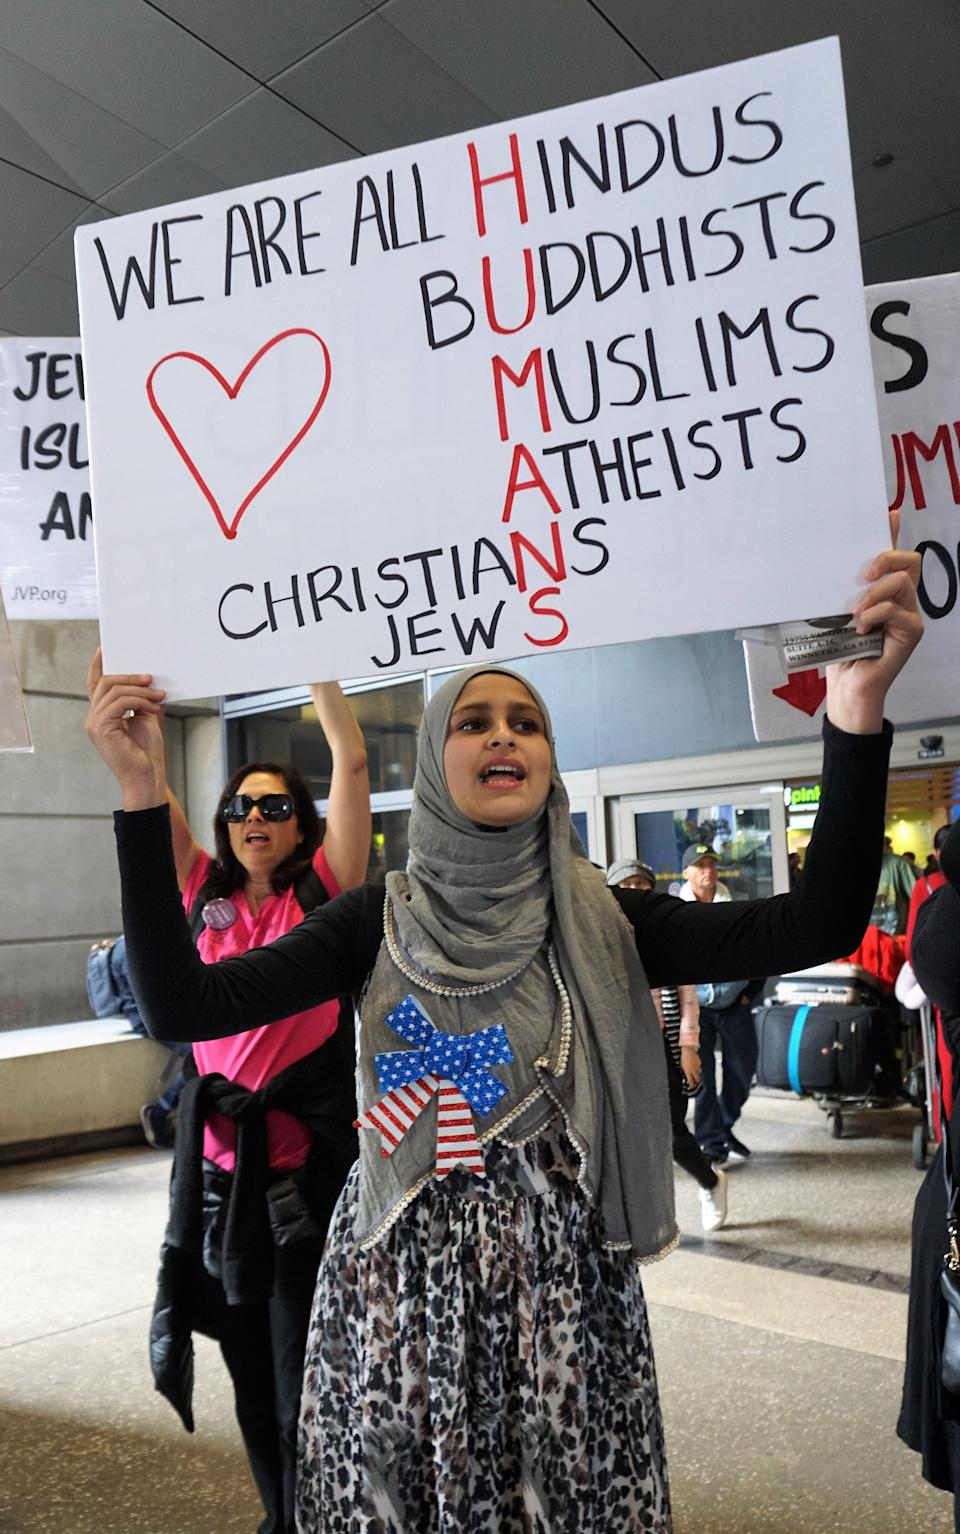 Demonstrators against President Donald Trump's Muslim Ban come together at Los Angeles International Airport, in Los Angeles, California, United States on February 4, 2017.